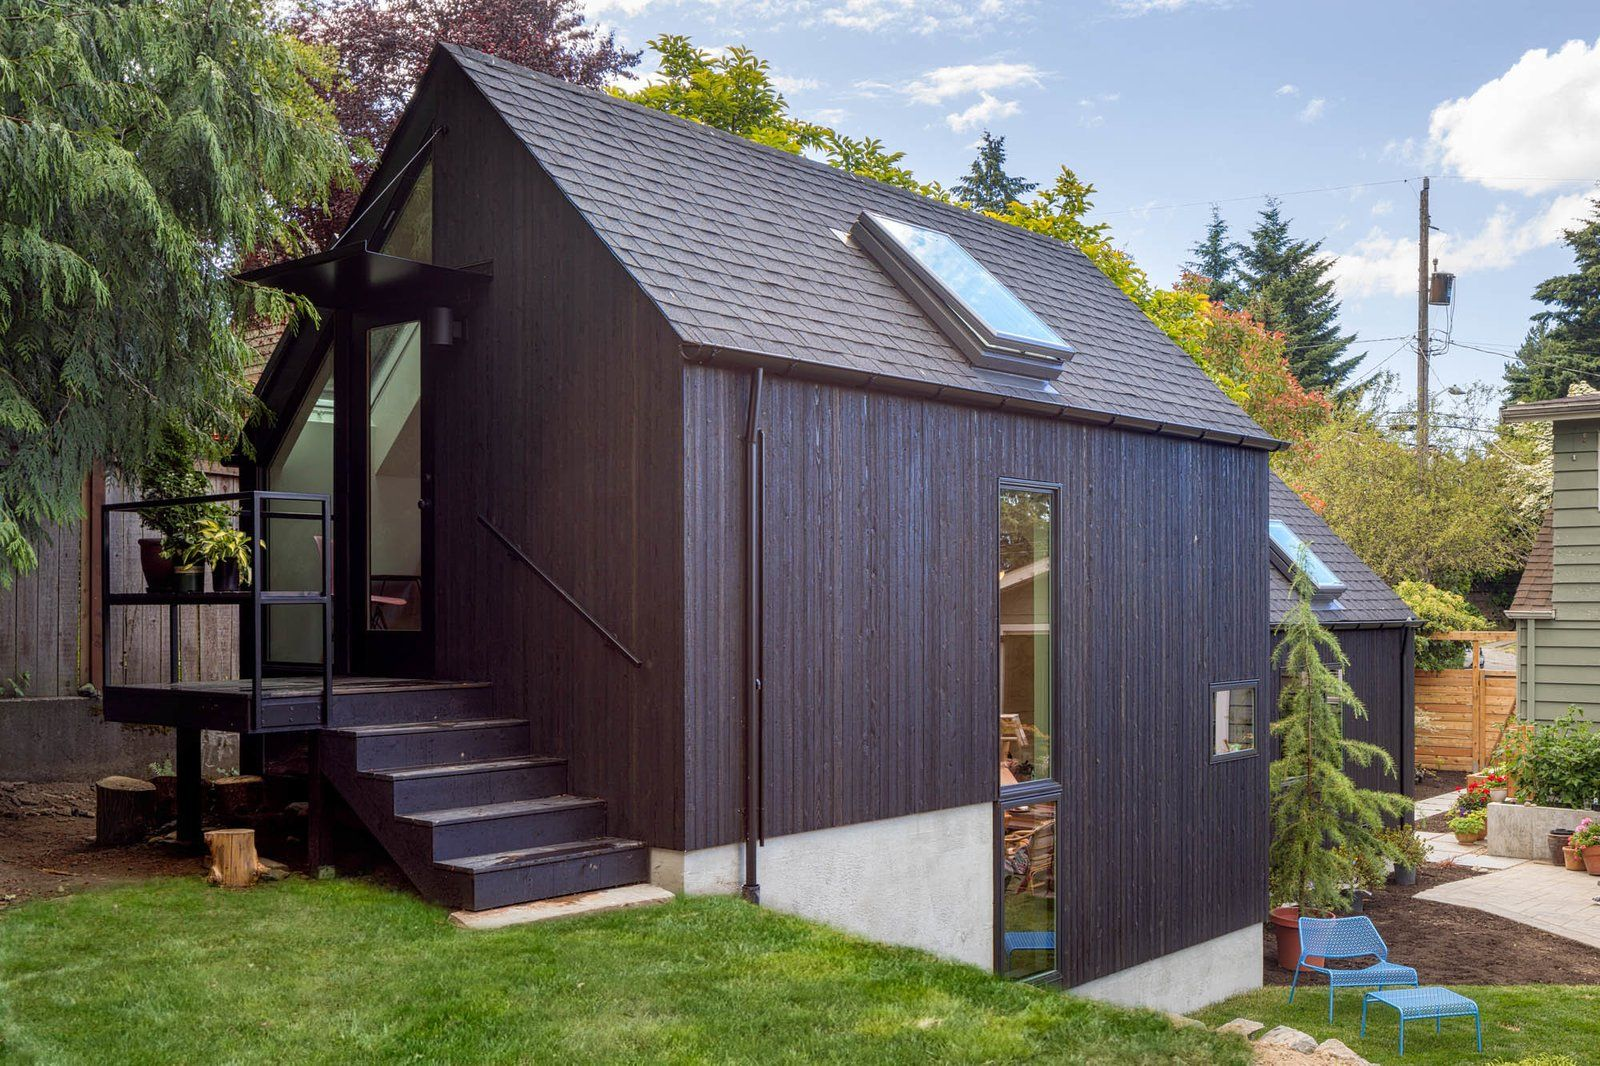 Photo 2 Of 13 In A Detached Garage Becomes A Winning Granny Pad Backyard Cottage American Houses Backyard Garage